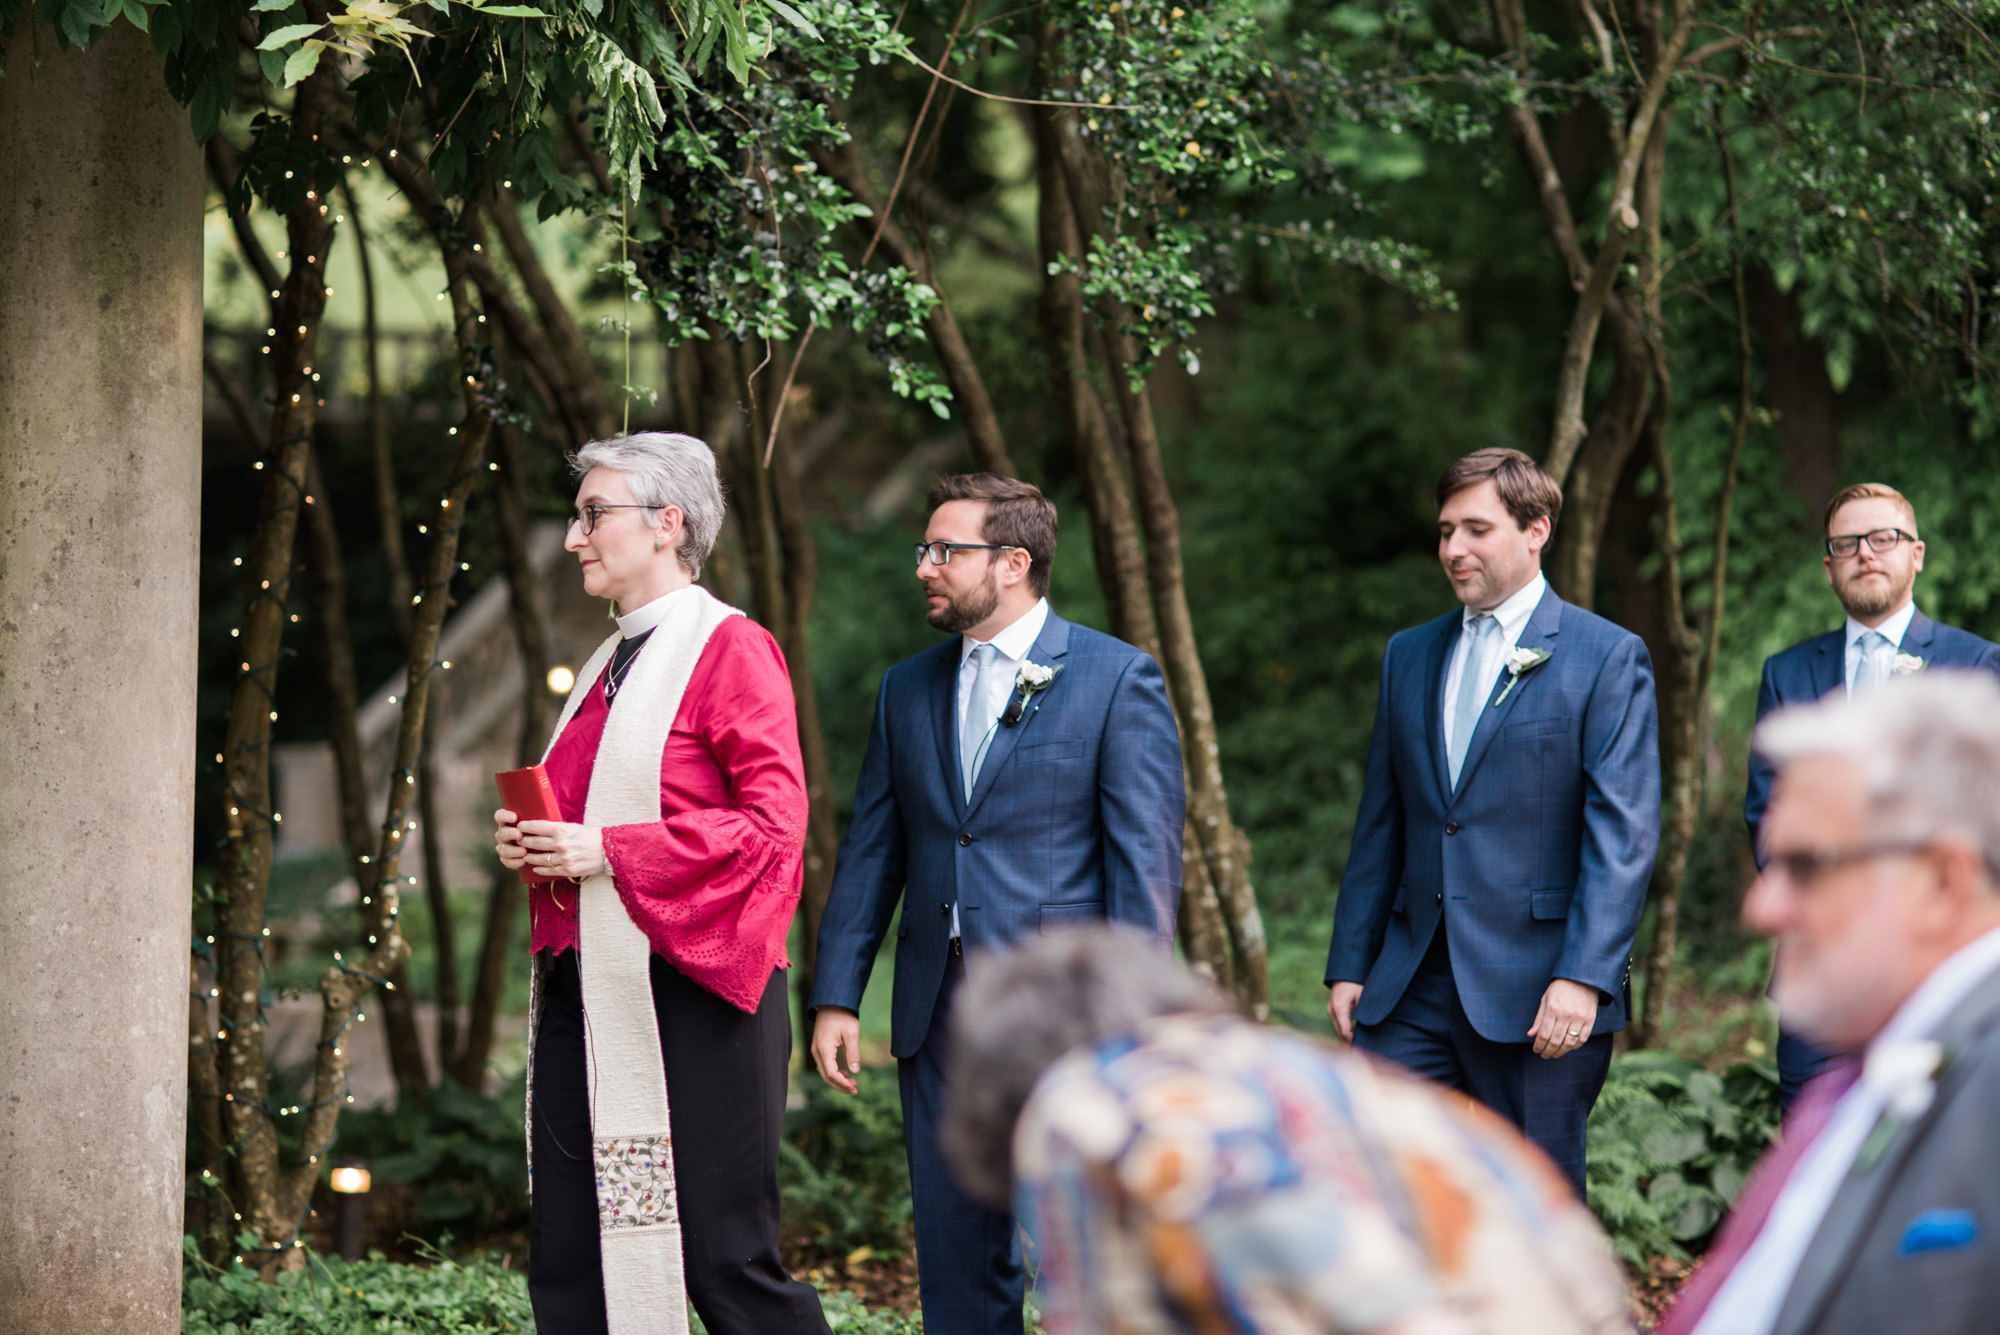 Atlanta-wedding-officiant-19.jpg